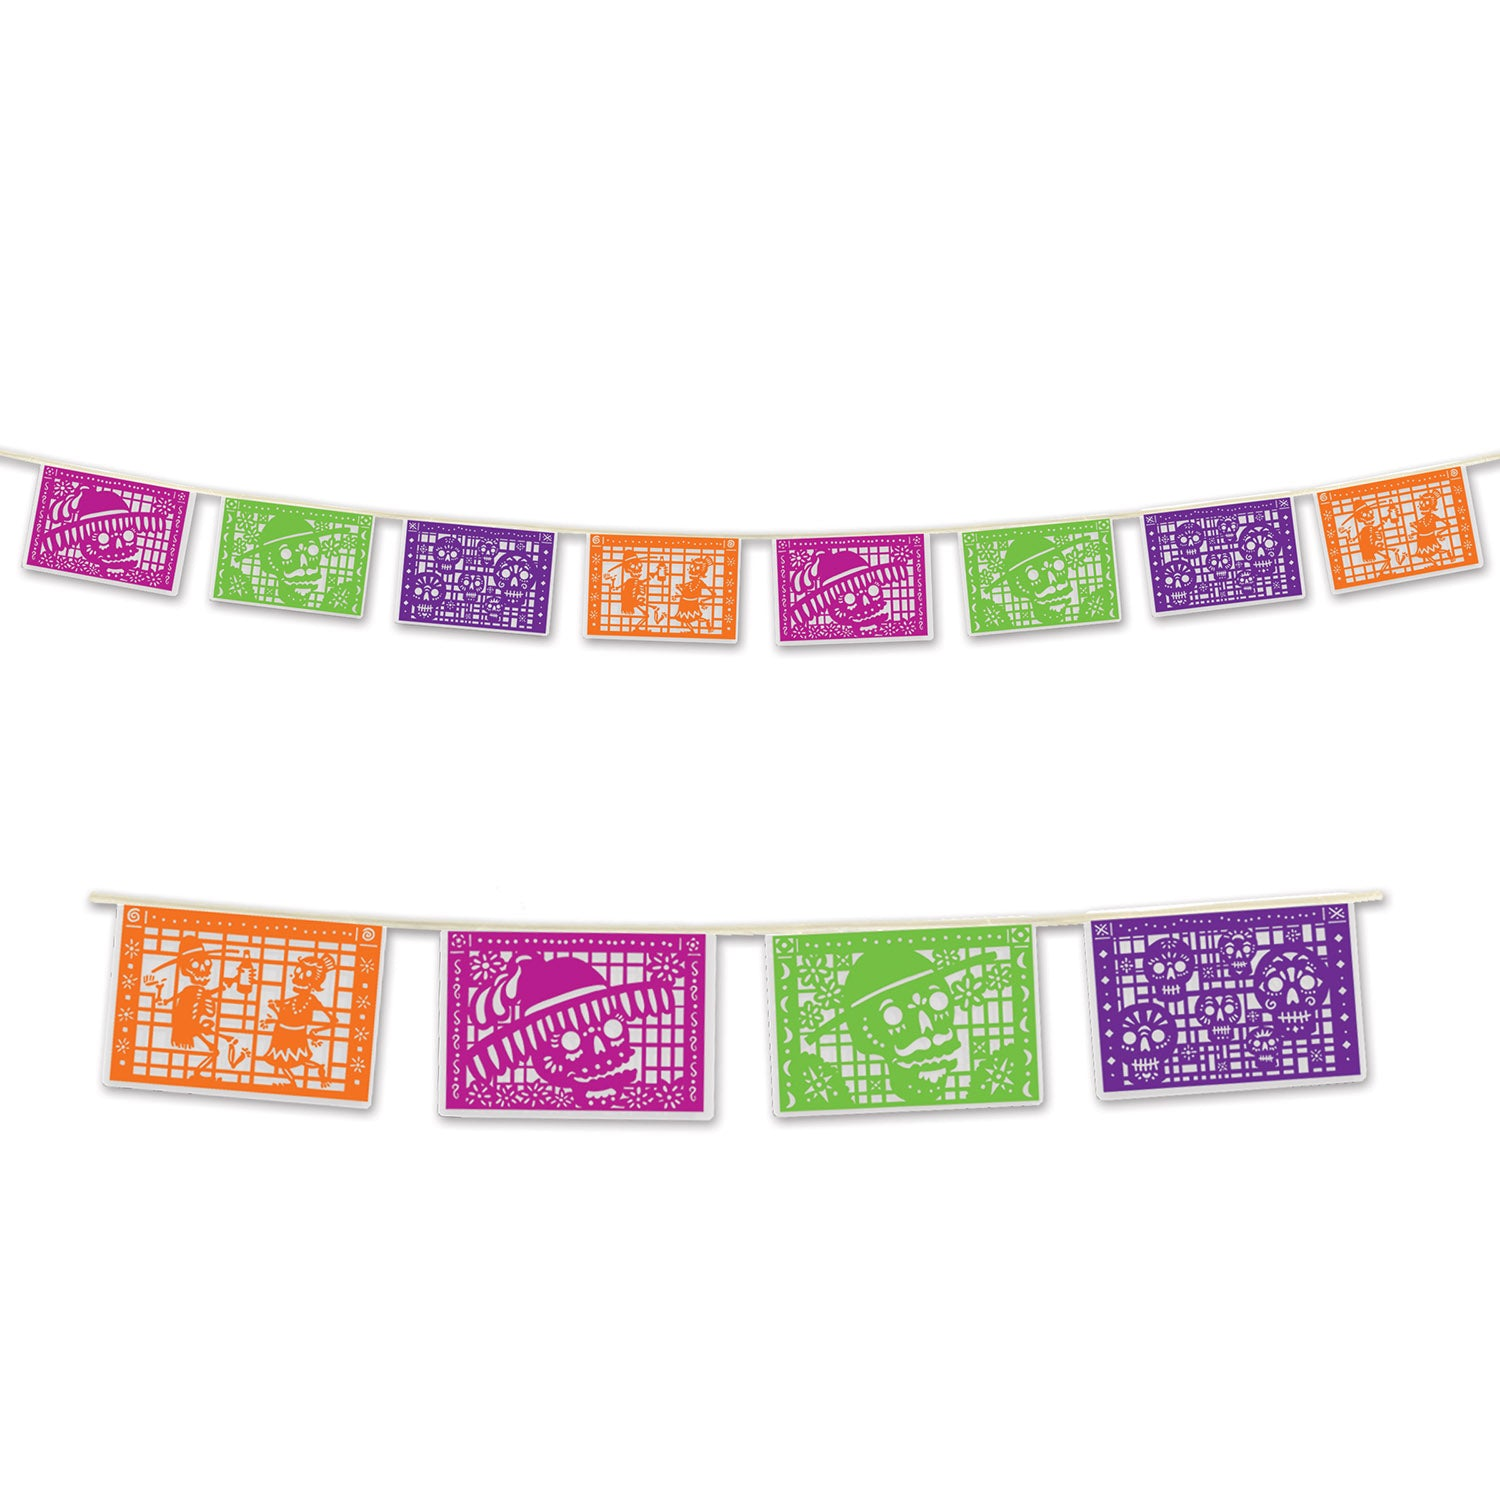 Day Of The Dead Picado Style Pennant Bnr - Day of the Dead Theme Party Supplies